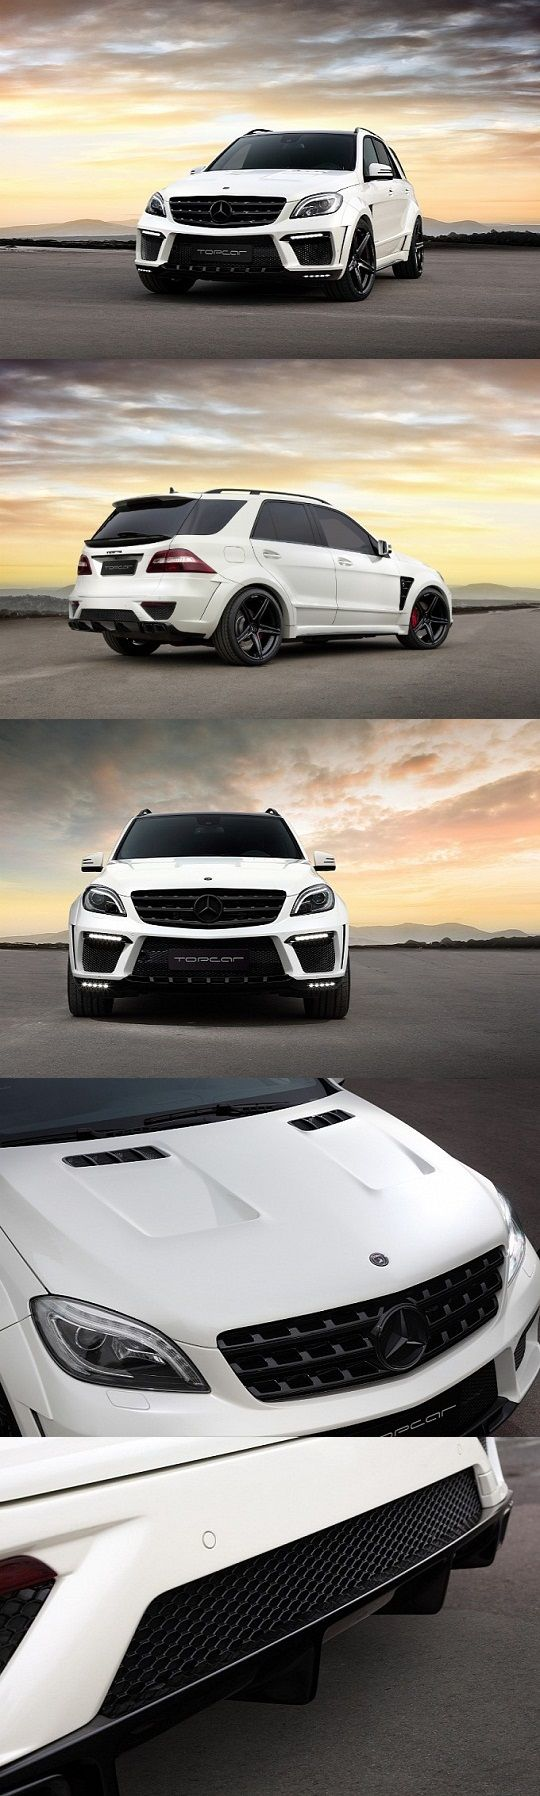 25 best ideas about mercedes benz suv on pinterest for Mercedes benz suv models list